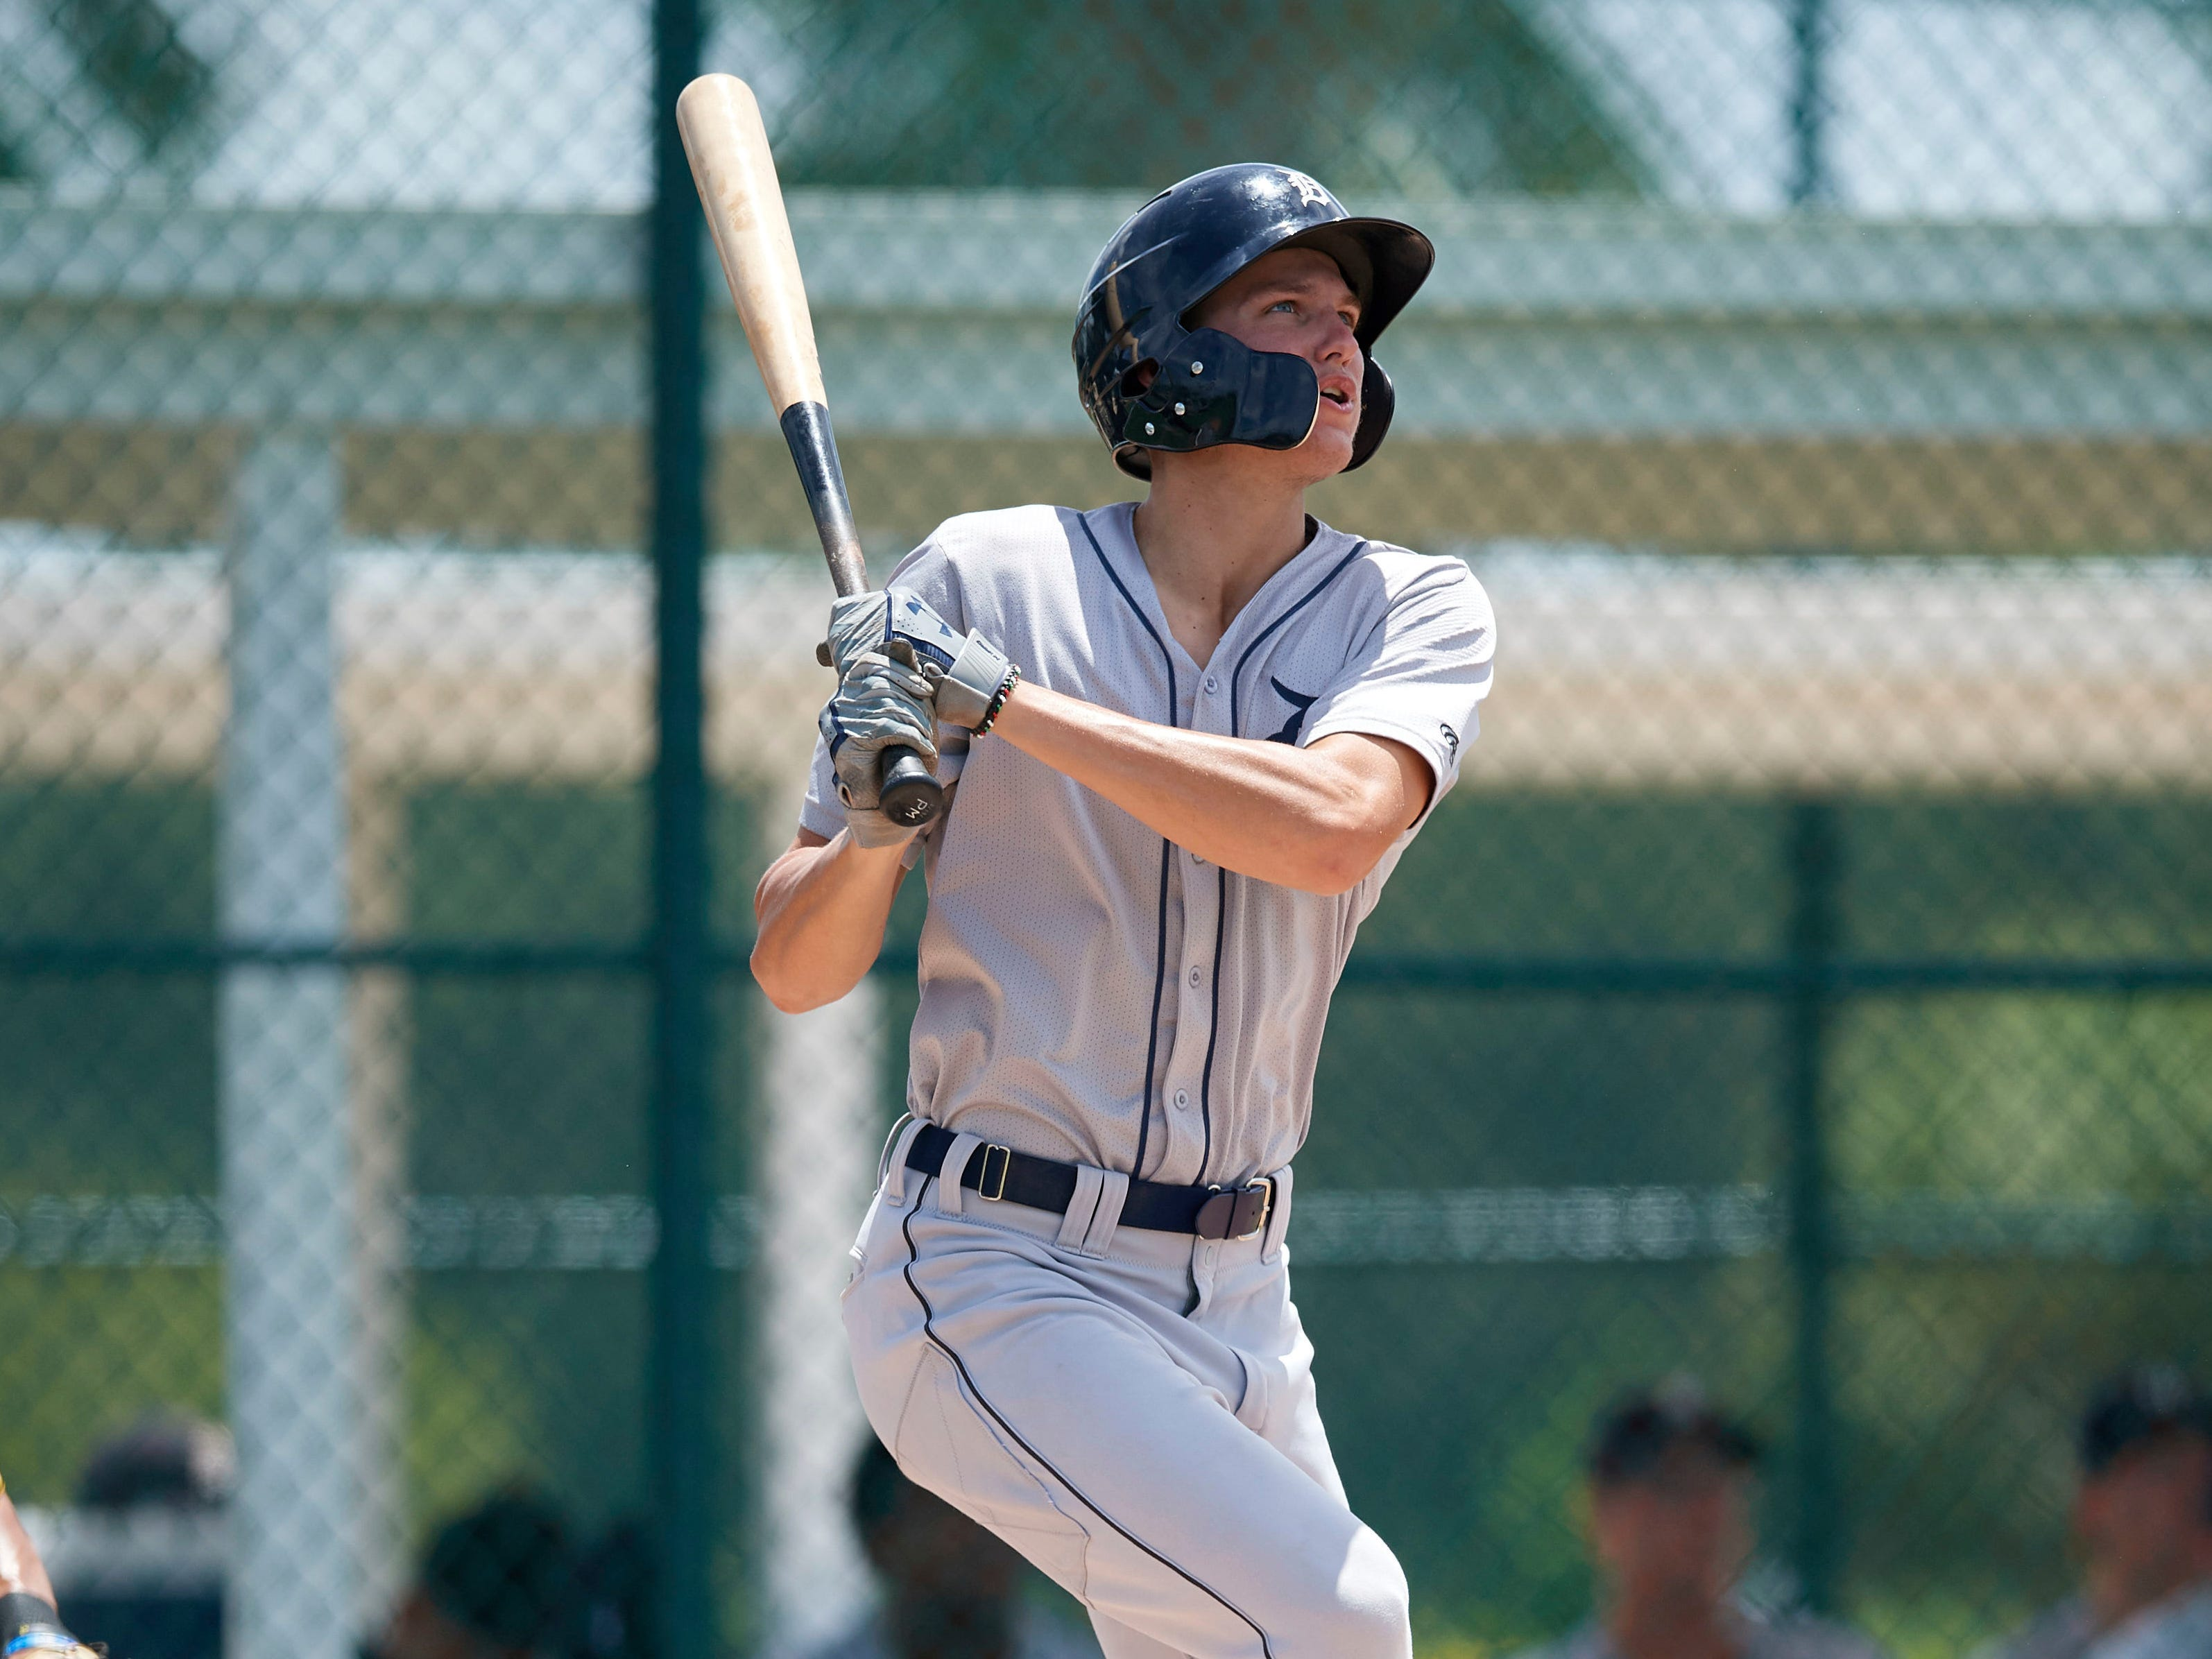 5. Parker Meadows, RF, 19, 6-5, 185: Tigers believe they got first-round talent in the second round when they grabbed Meadows last June. He got dinged during some rookie games but should unveil that left-handed bat, speed, and all-around portfolio in 2019. The Tigers desperately needed this kind of player and hitter in their system. They got him – as 2019 should affirm. He's fresh out of high school, but a gifted talent whose brother, Austin, already has cracked the big leagues.